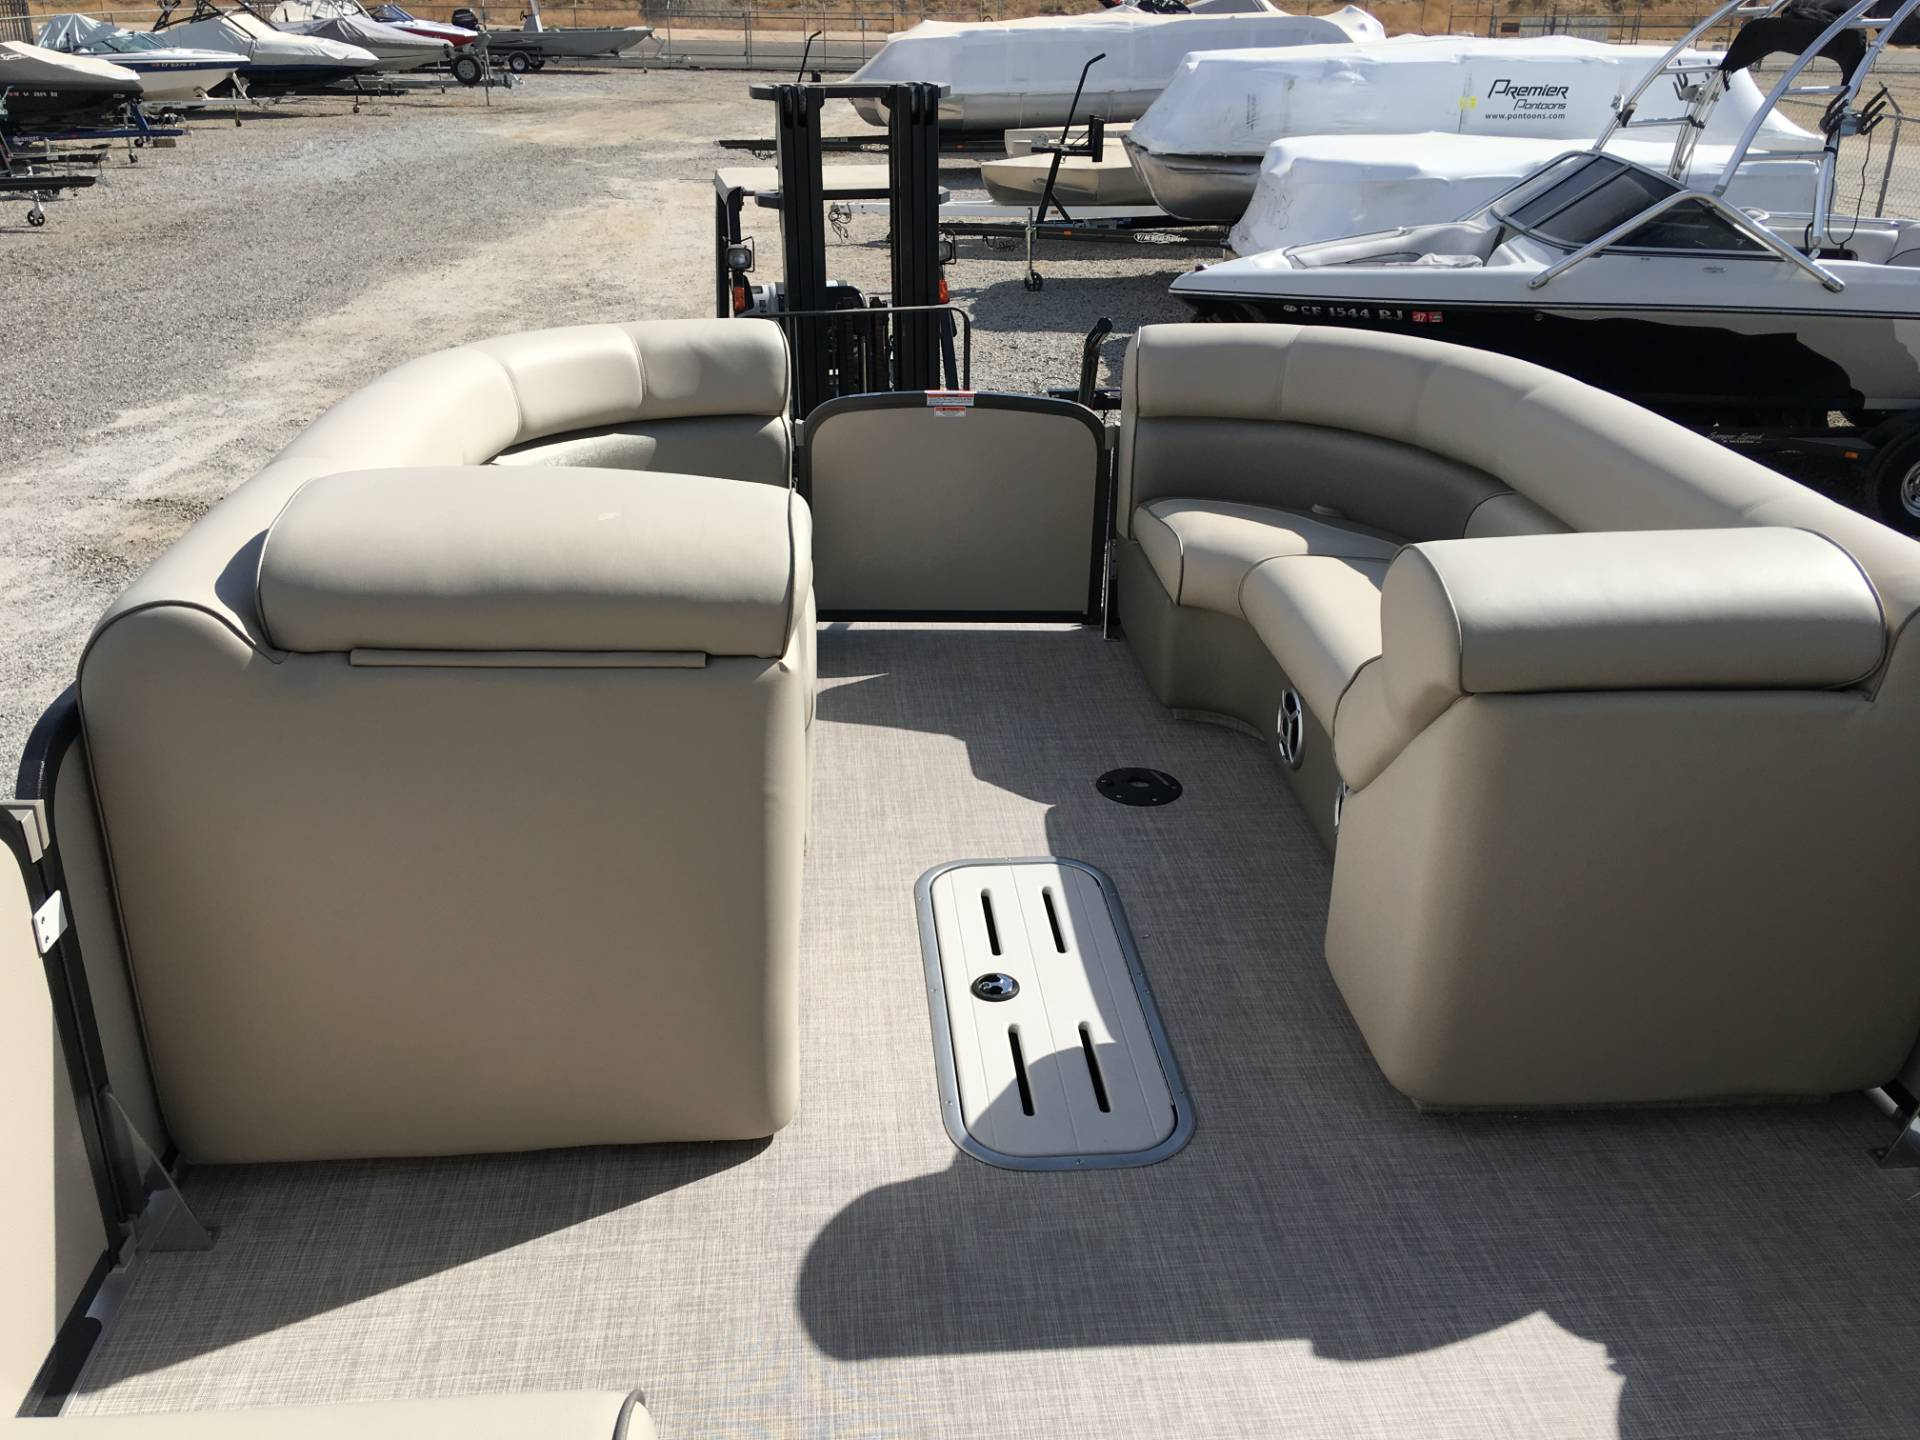 2017 Premier Upper Deck with Slide in Madera, California